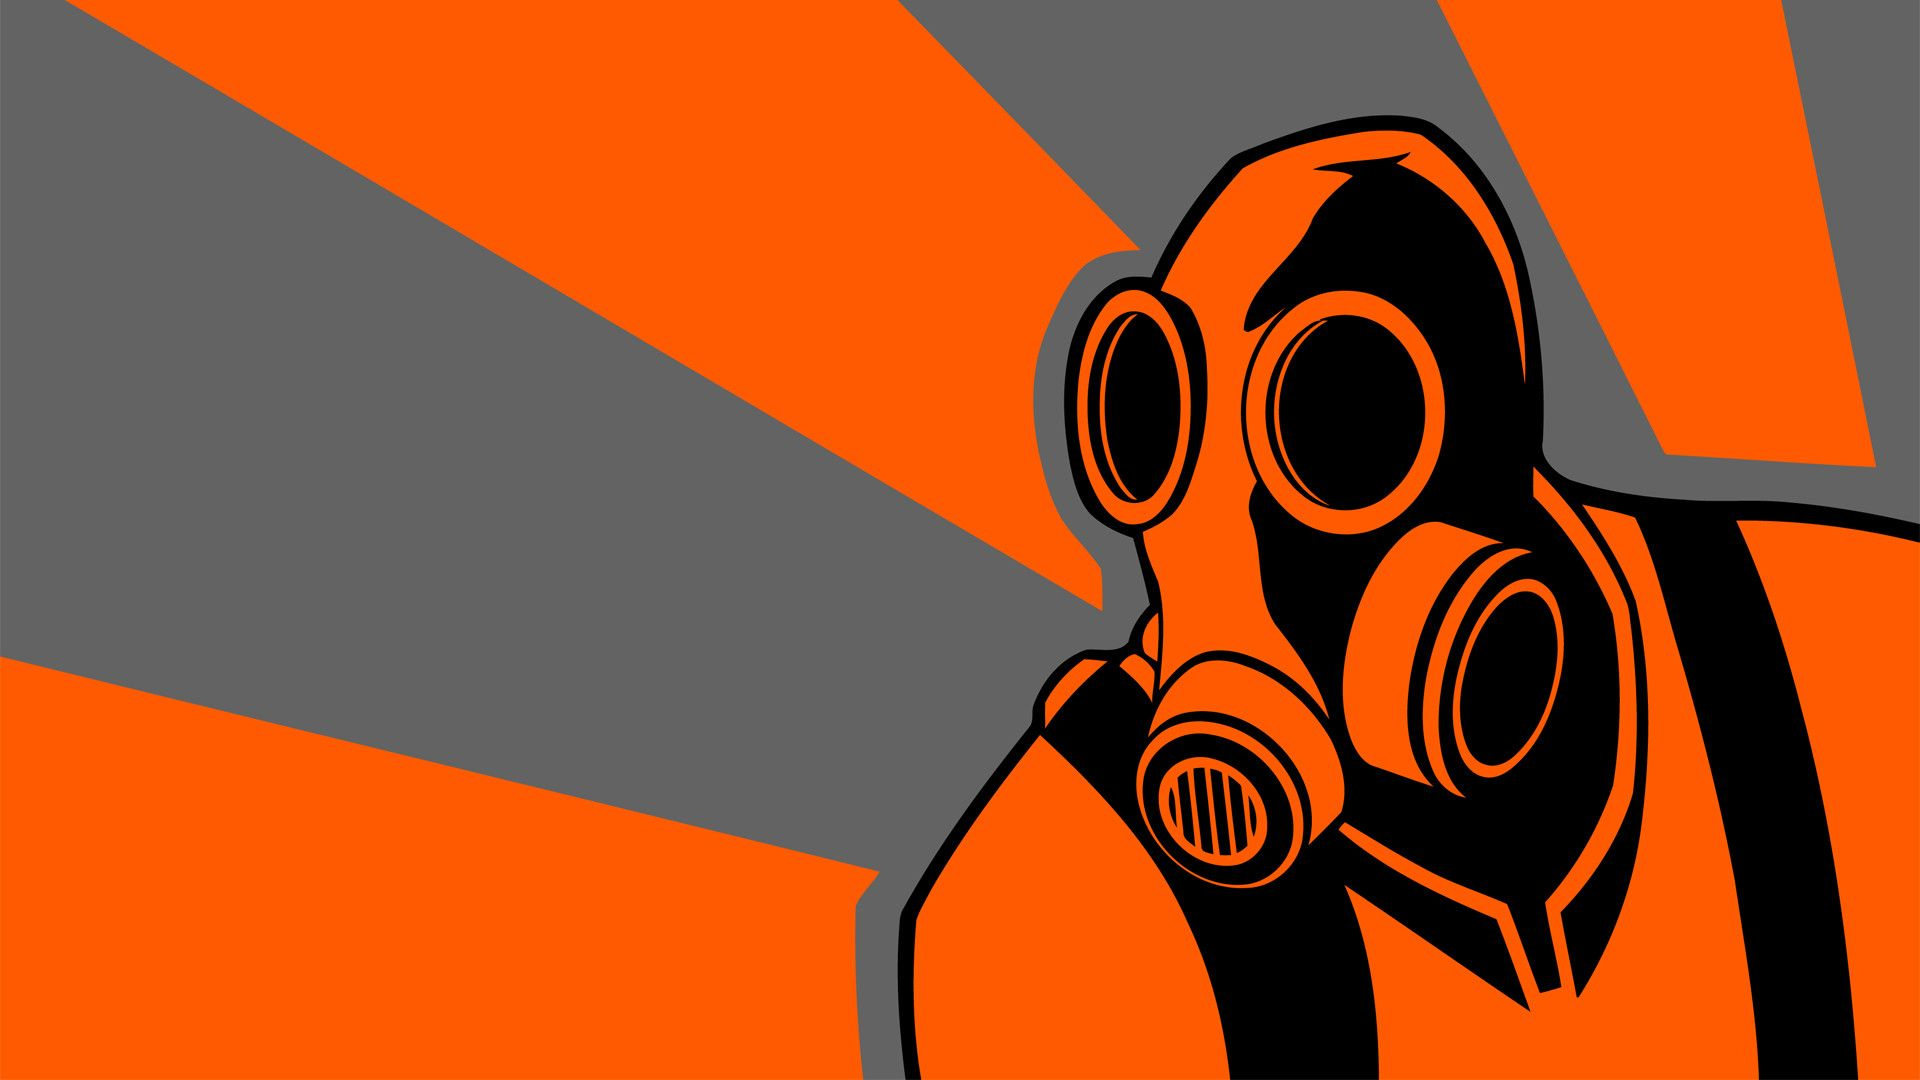 Tf2 Pyro Wallpaper